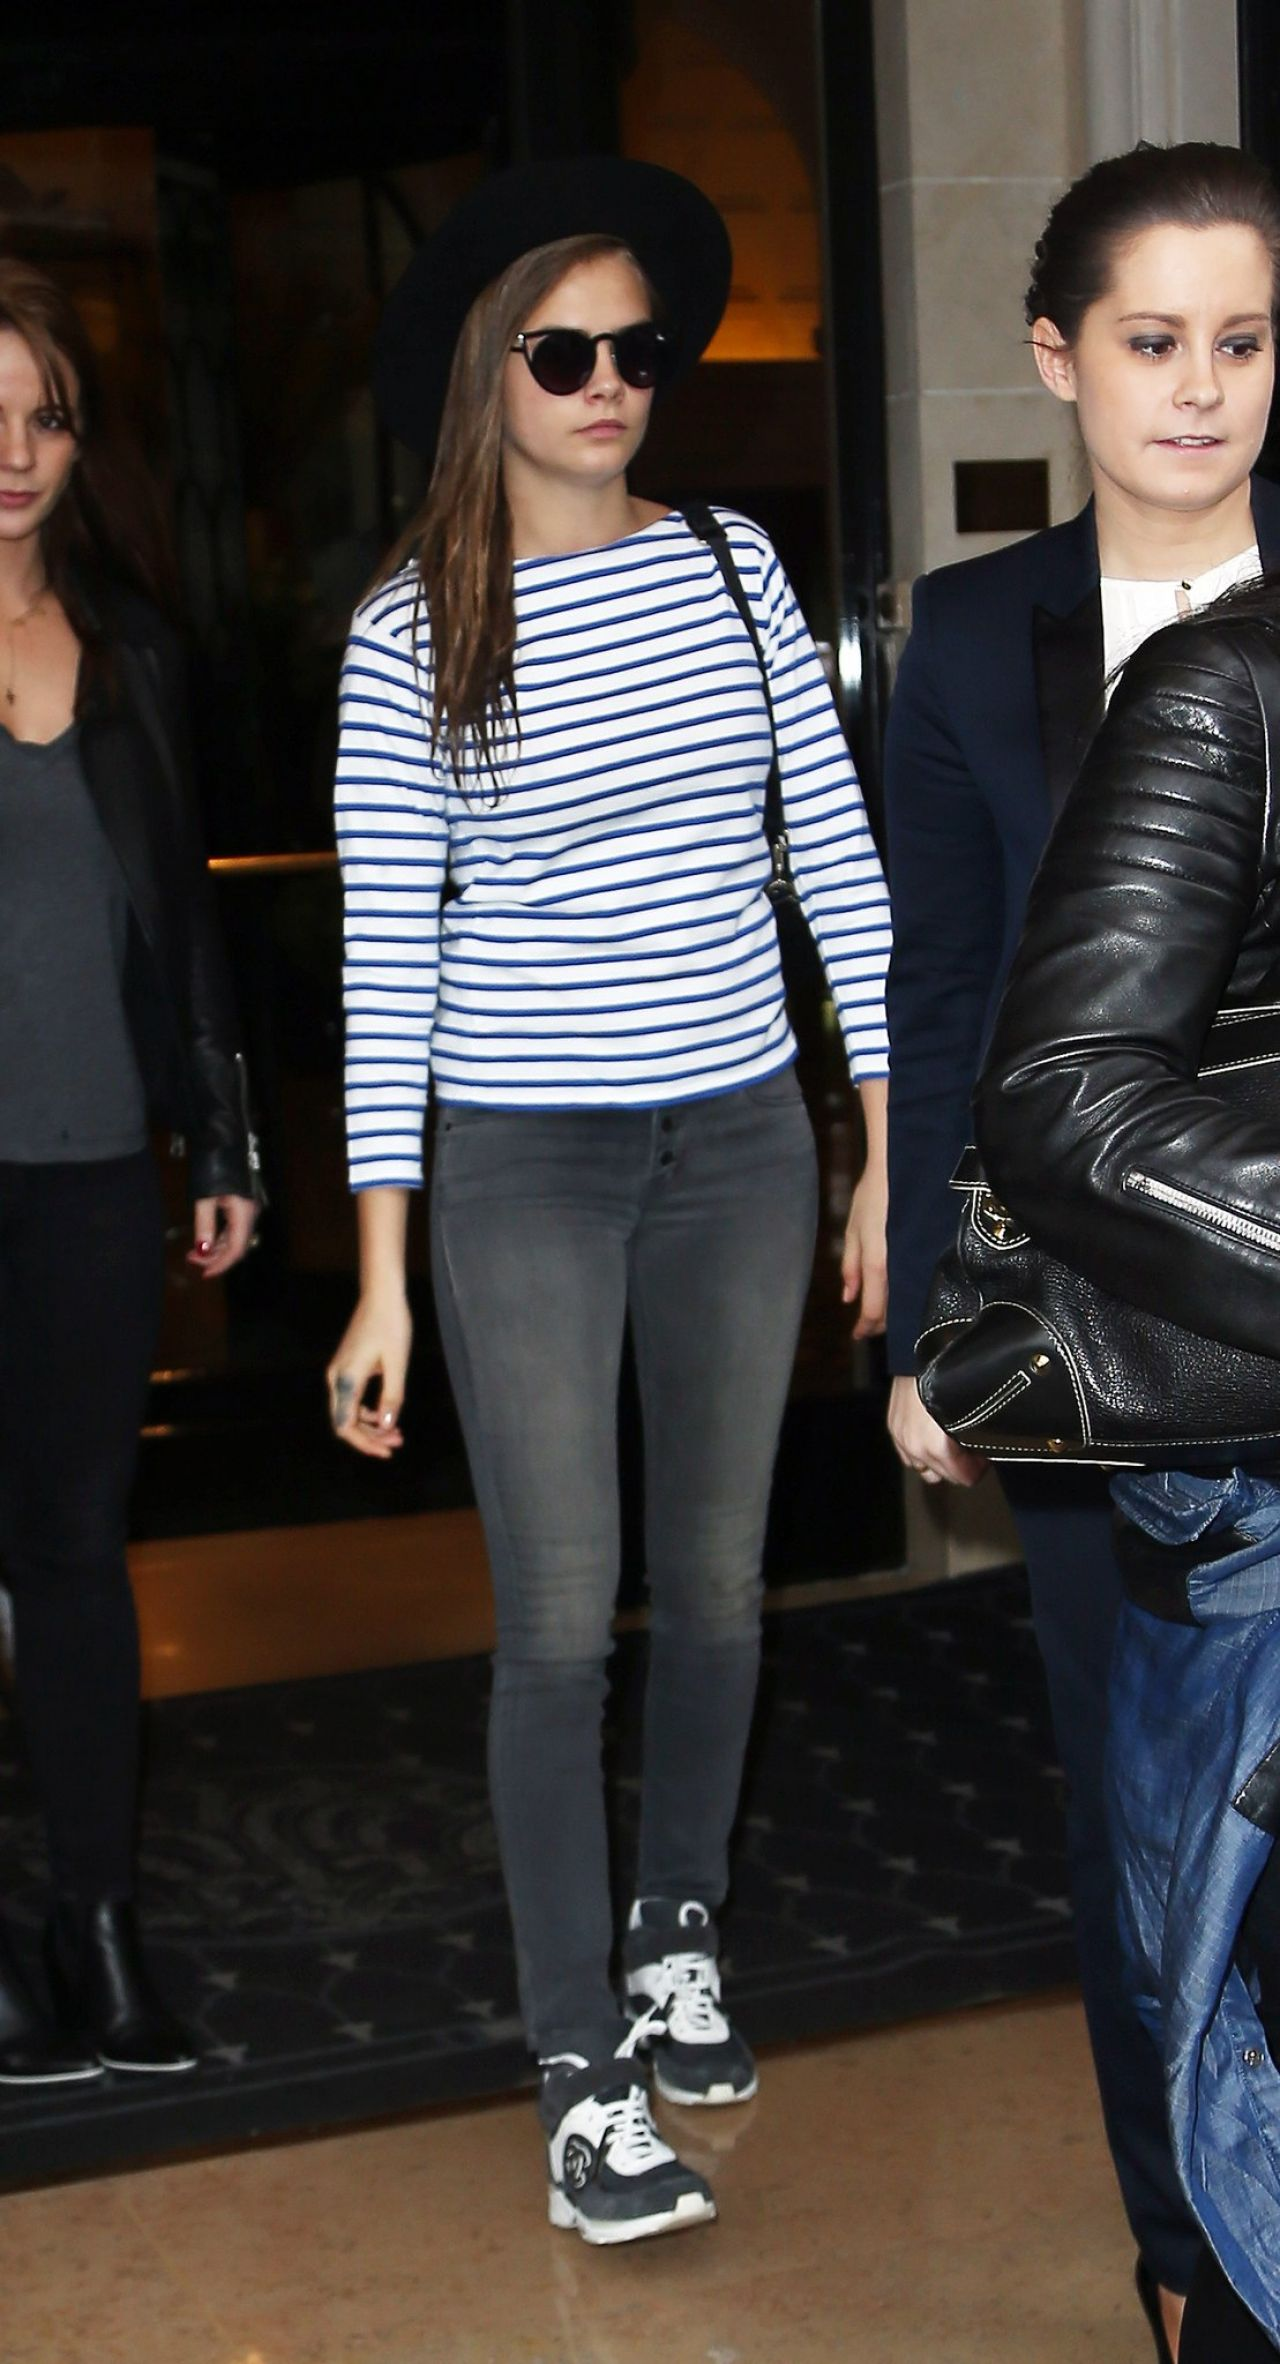 Cara Delevingne Street Style - Leaving a Hotel in Paris, March 2015